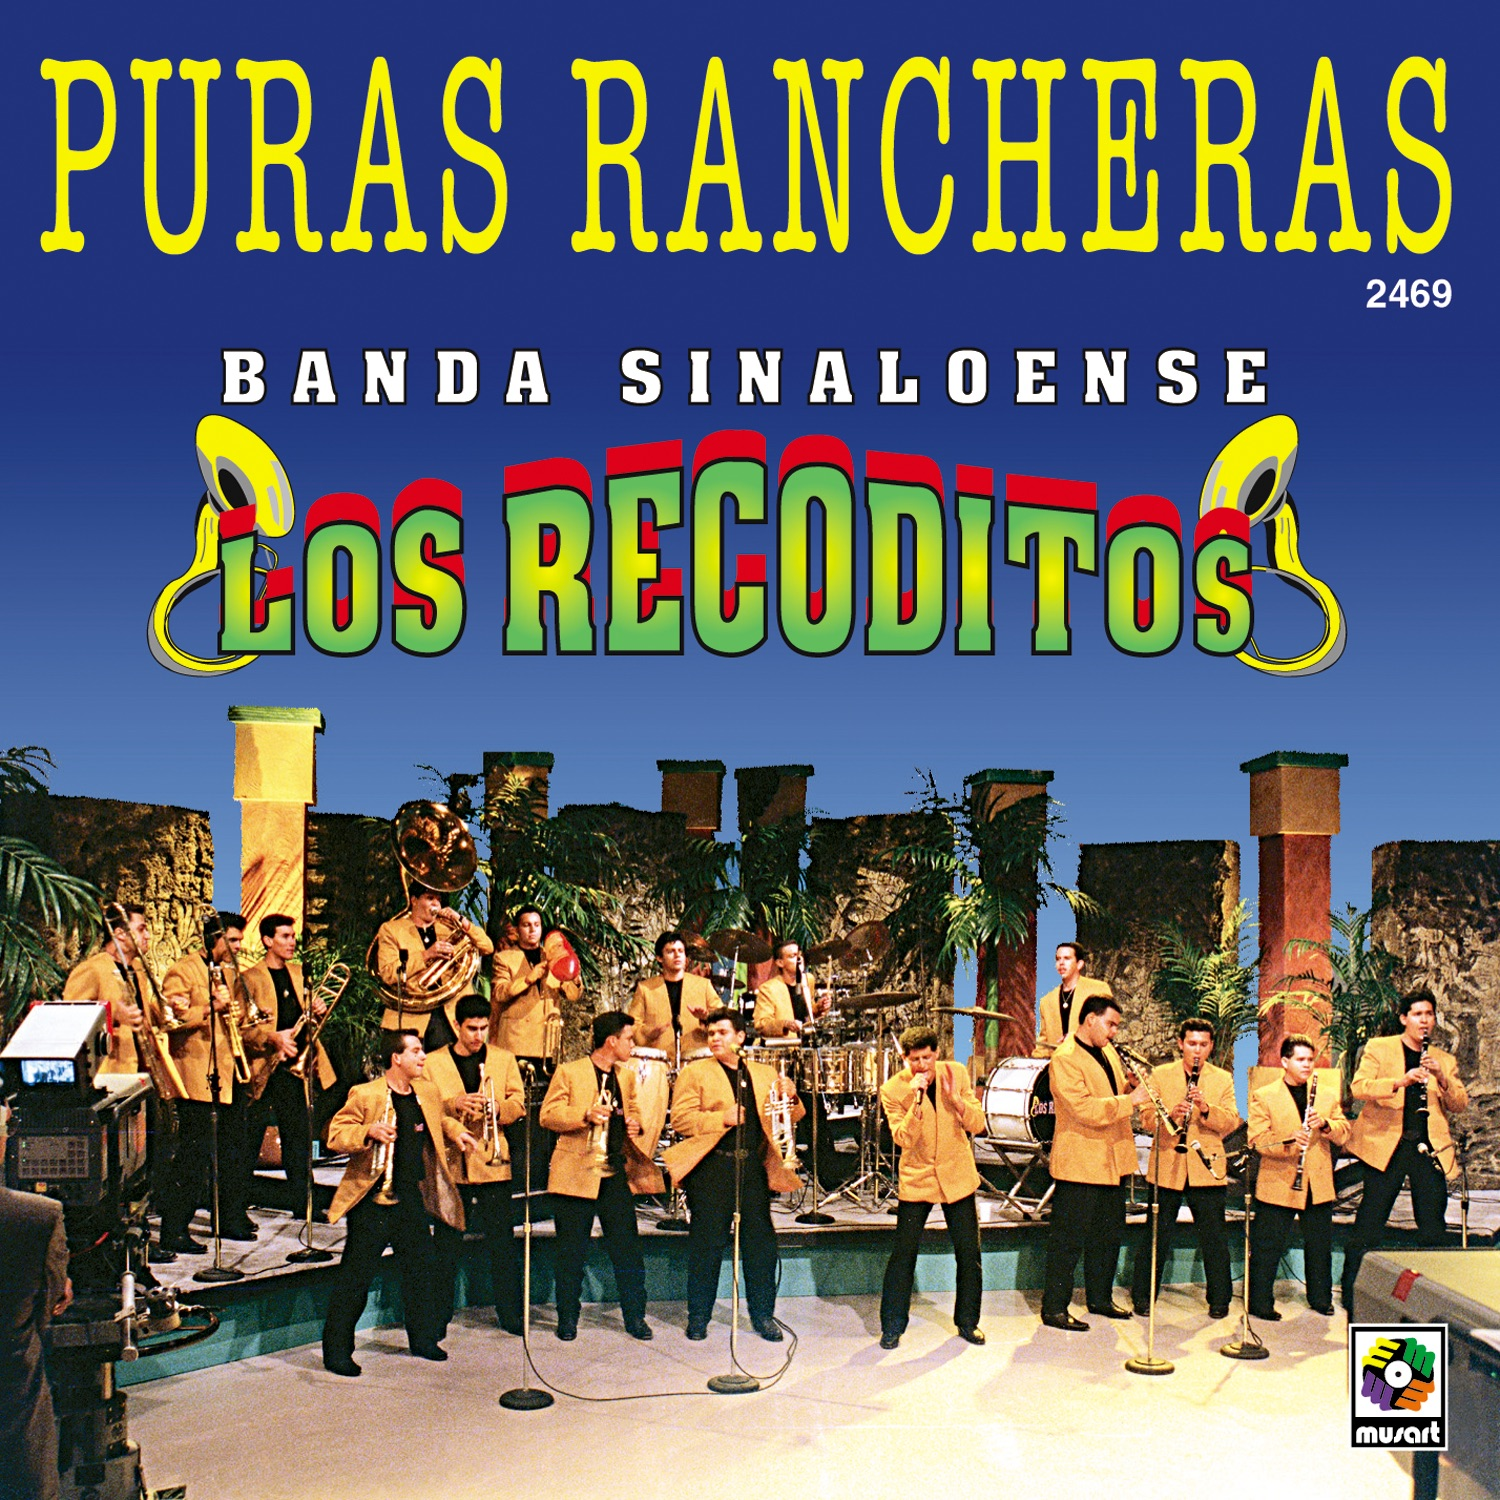 MP3 Songs Online:♫ Las Rejas No Matan - Banda Sinaloense Los Recoditos album Puras Rancheras - Banda Sinaloense los Recoditos. Latino,Music listen to music online free without downloading.